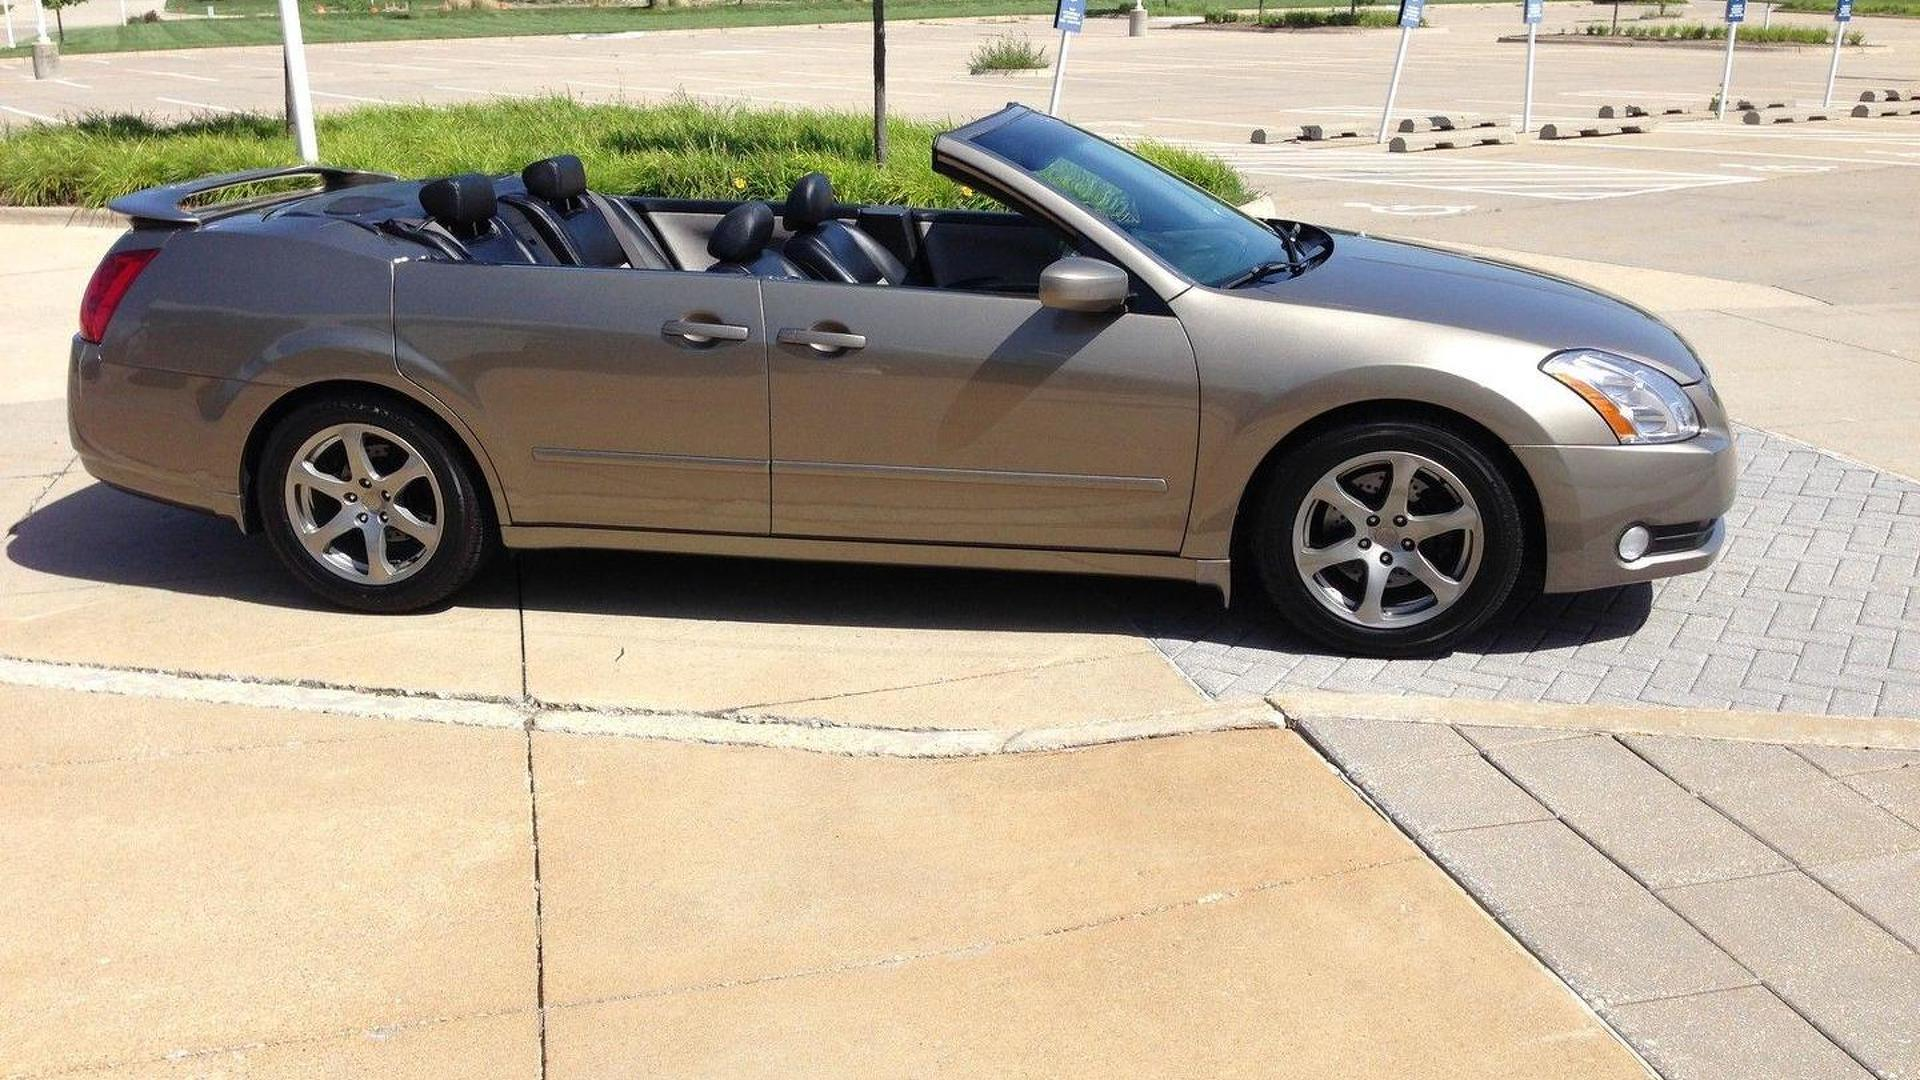 One-off Nissan Maxima convertible with suicide doors fails to sell on eBay